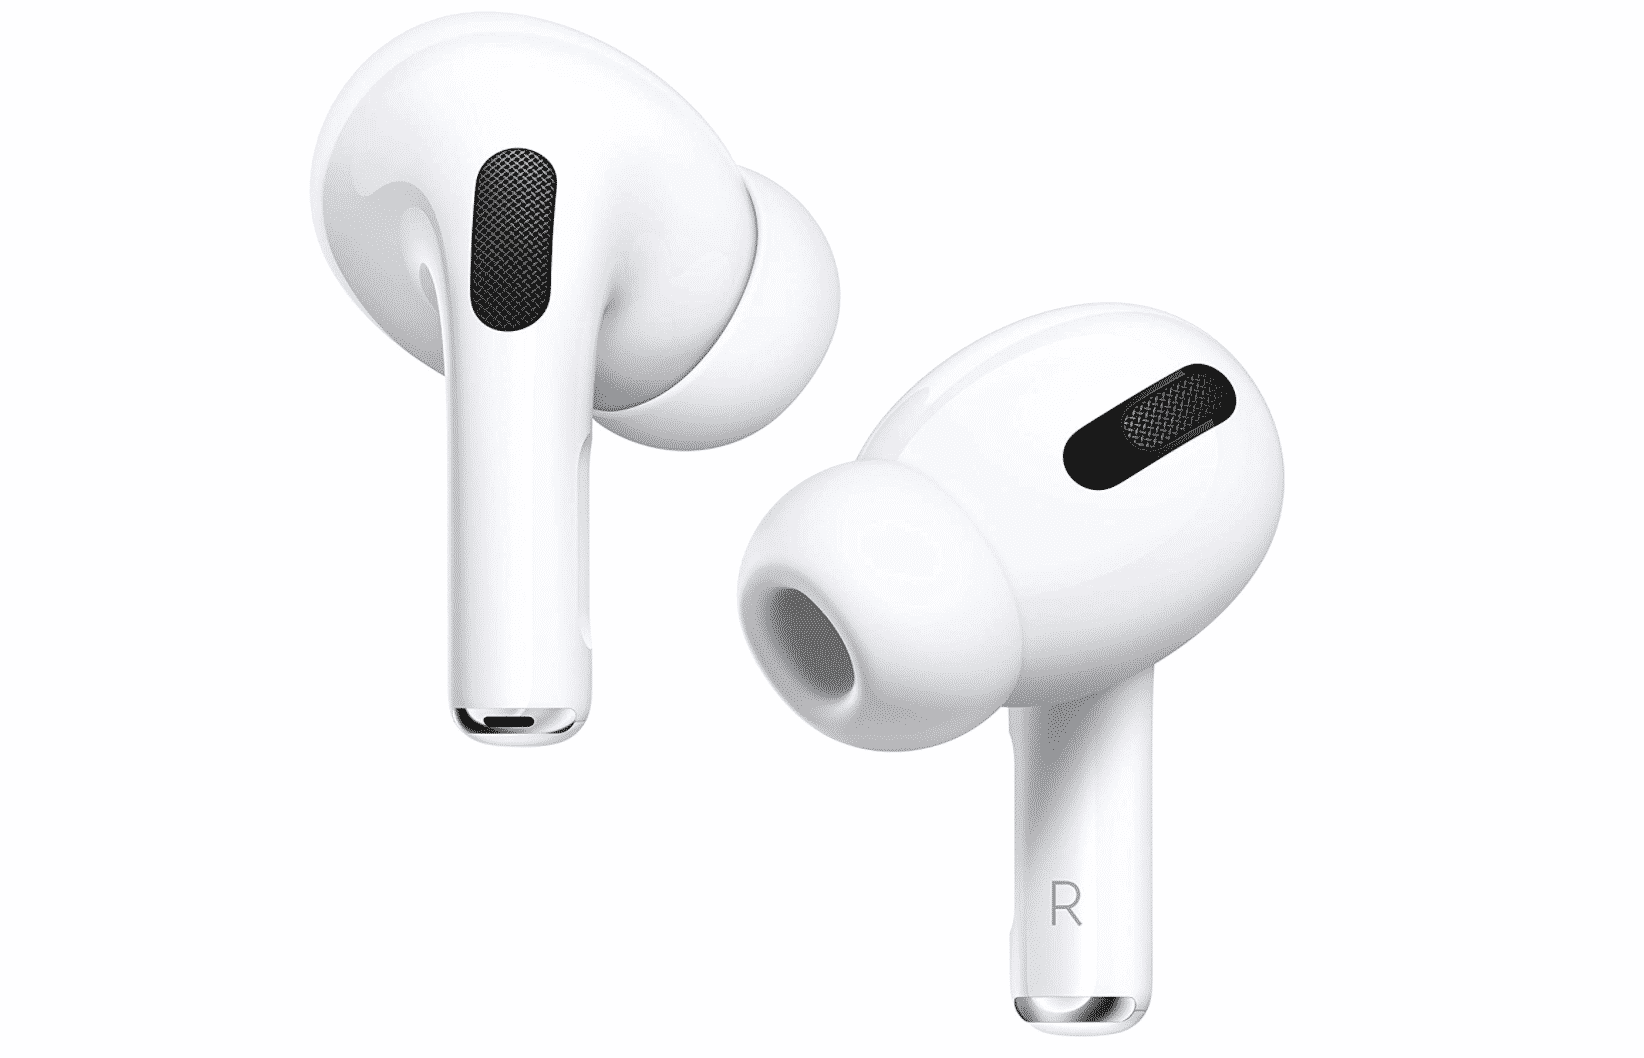 Take $50 Off the AirPods Pro